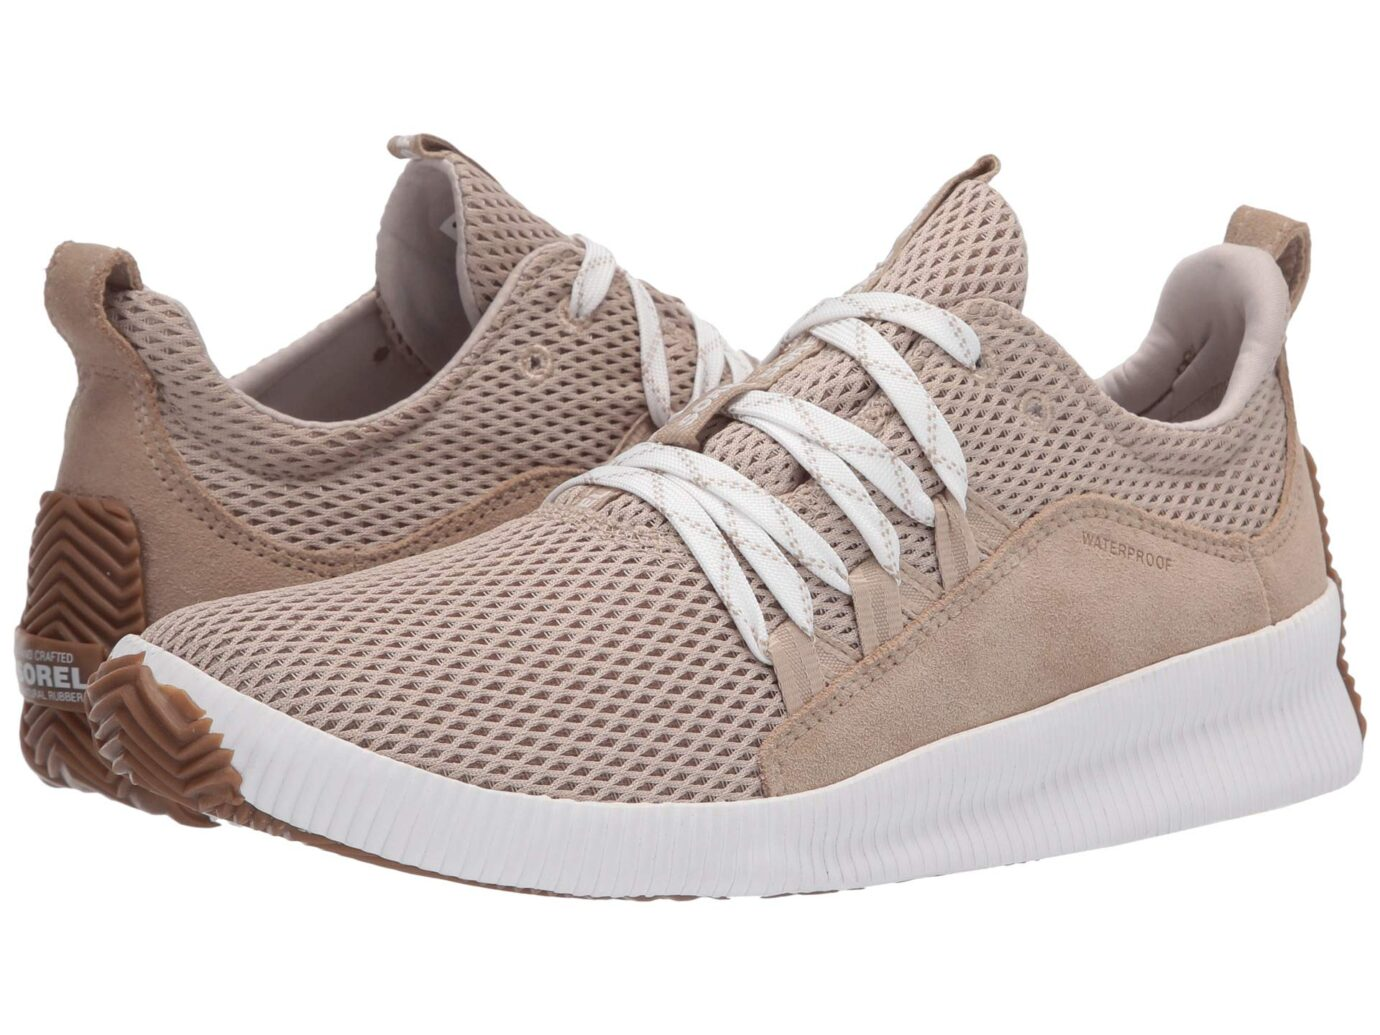 most stylish womens sneakers